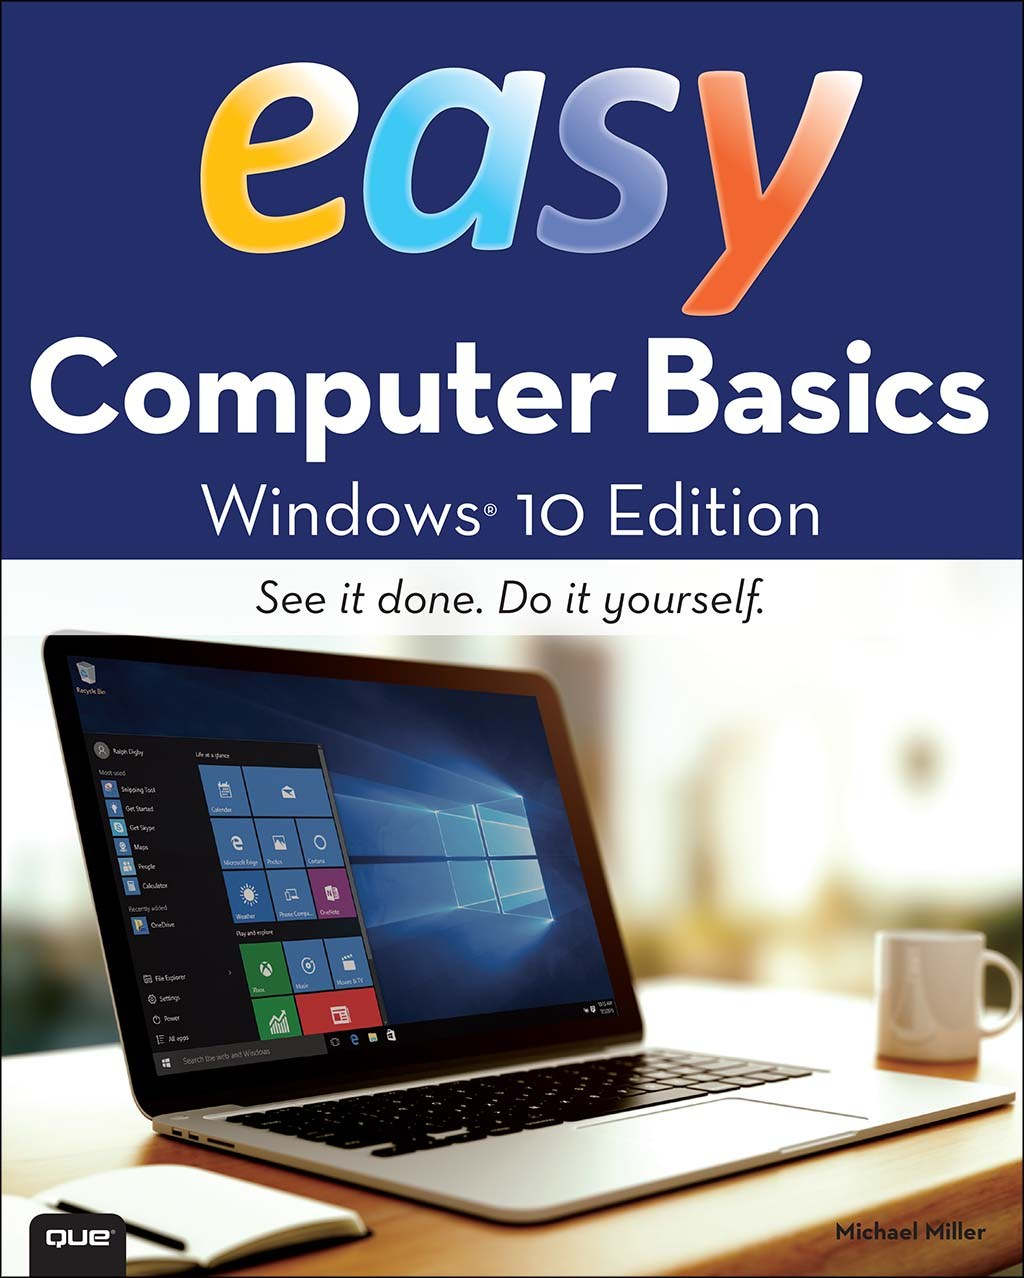 Easy Computer Basics, Windows 10 Edition